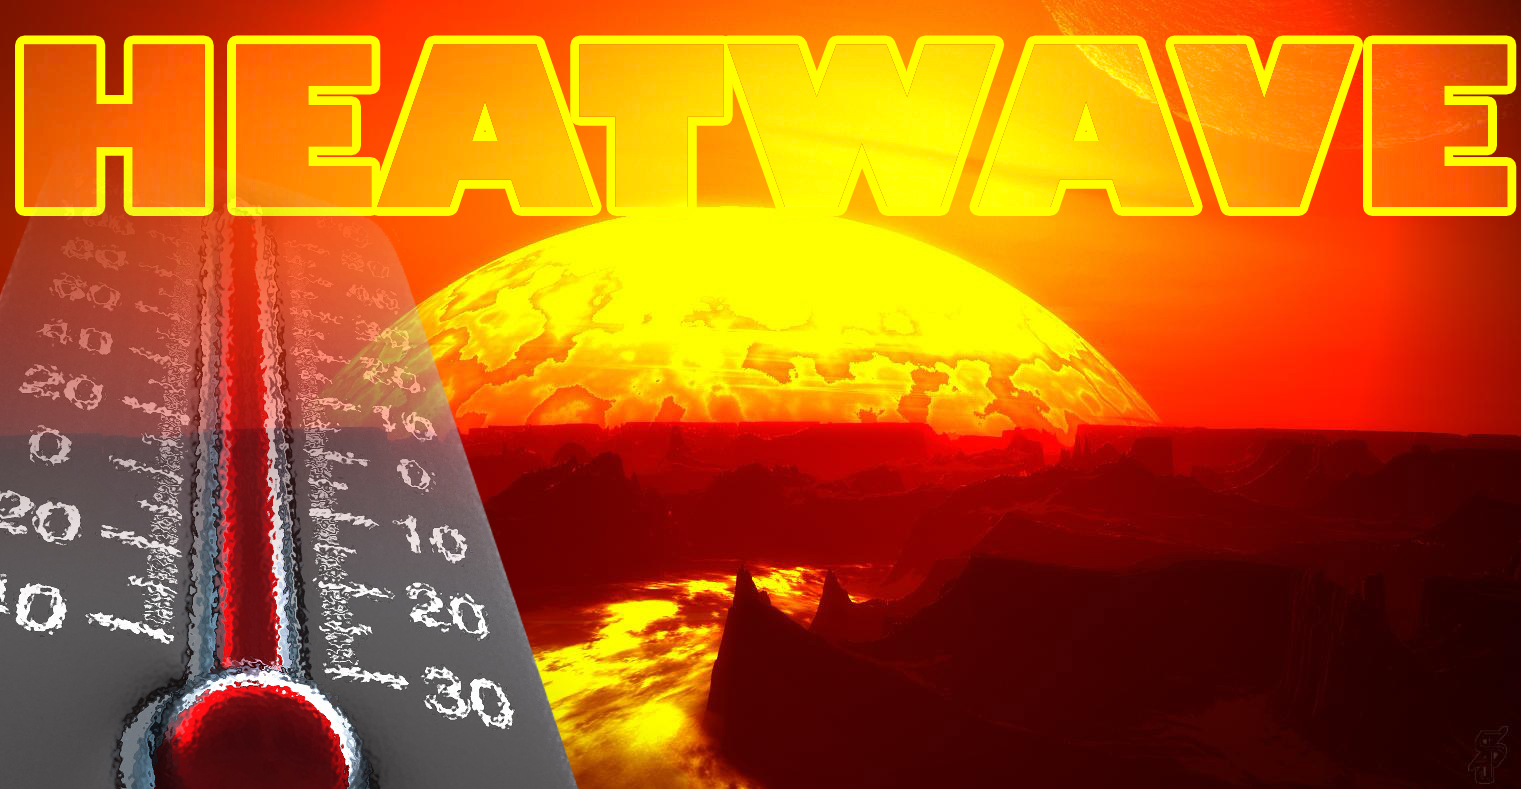 Heatwaves could annually kill over 150,000 in Europe by 2100